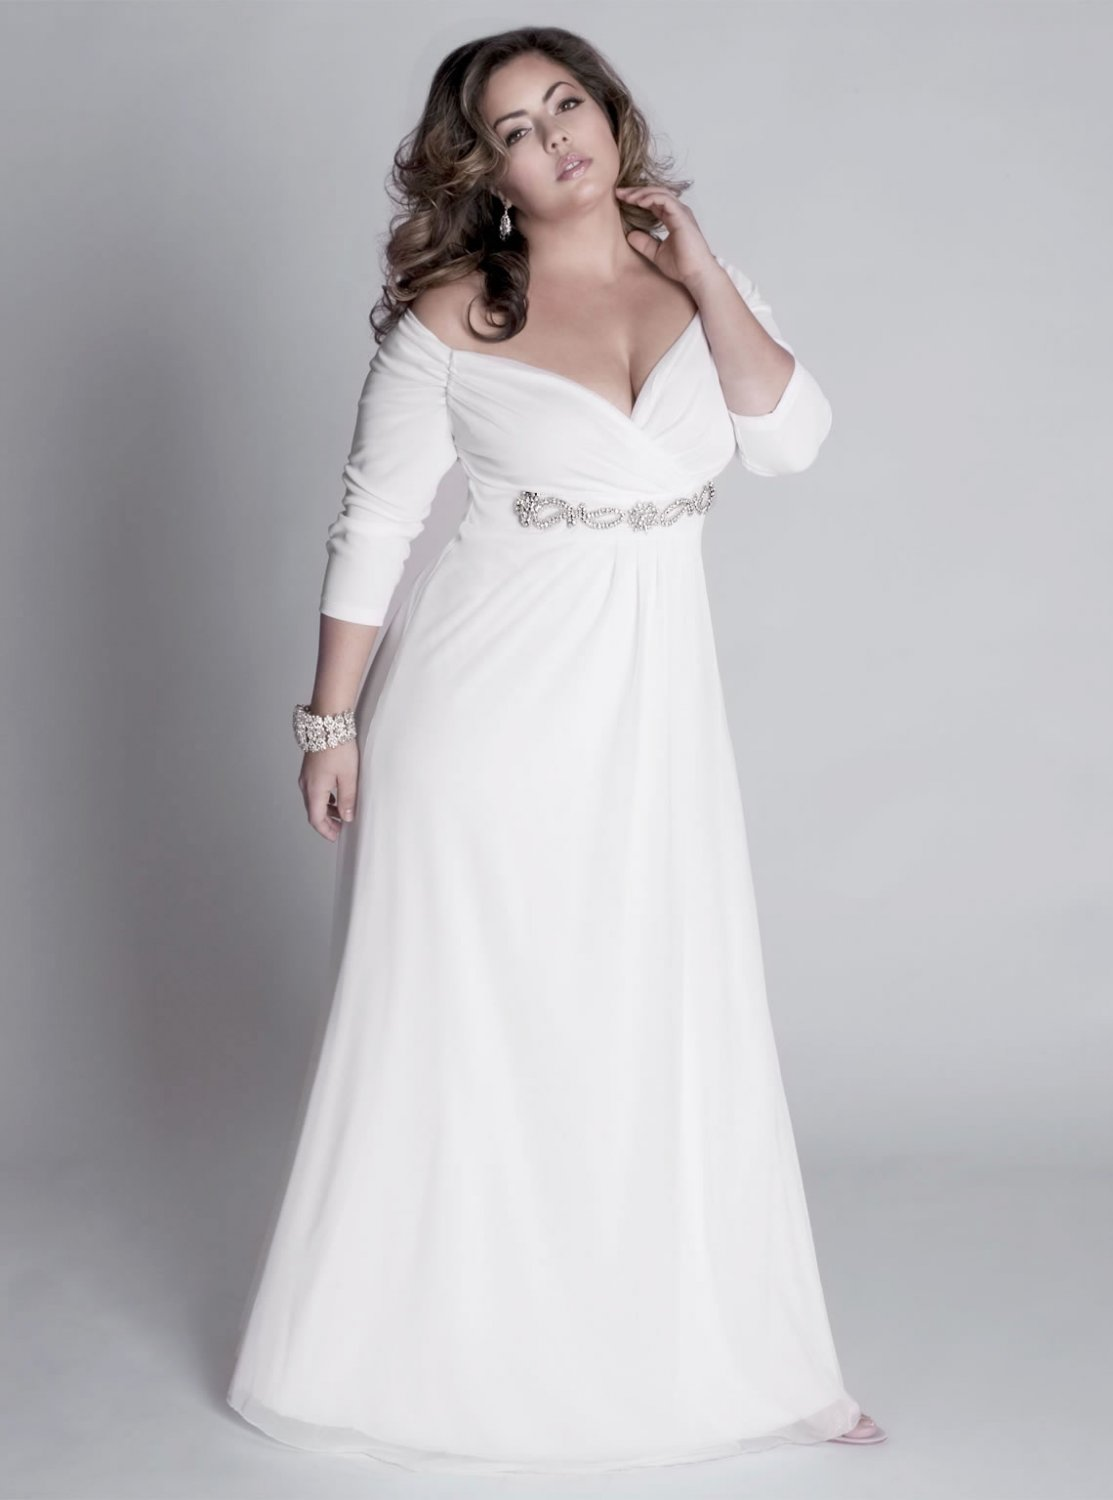 Darius Custom Long Sleeve Evening Gowns - White Plus Size Formal Dresses